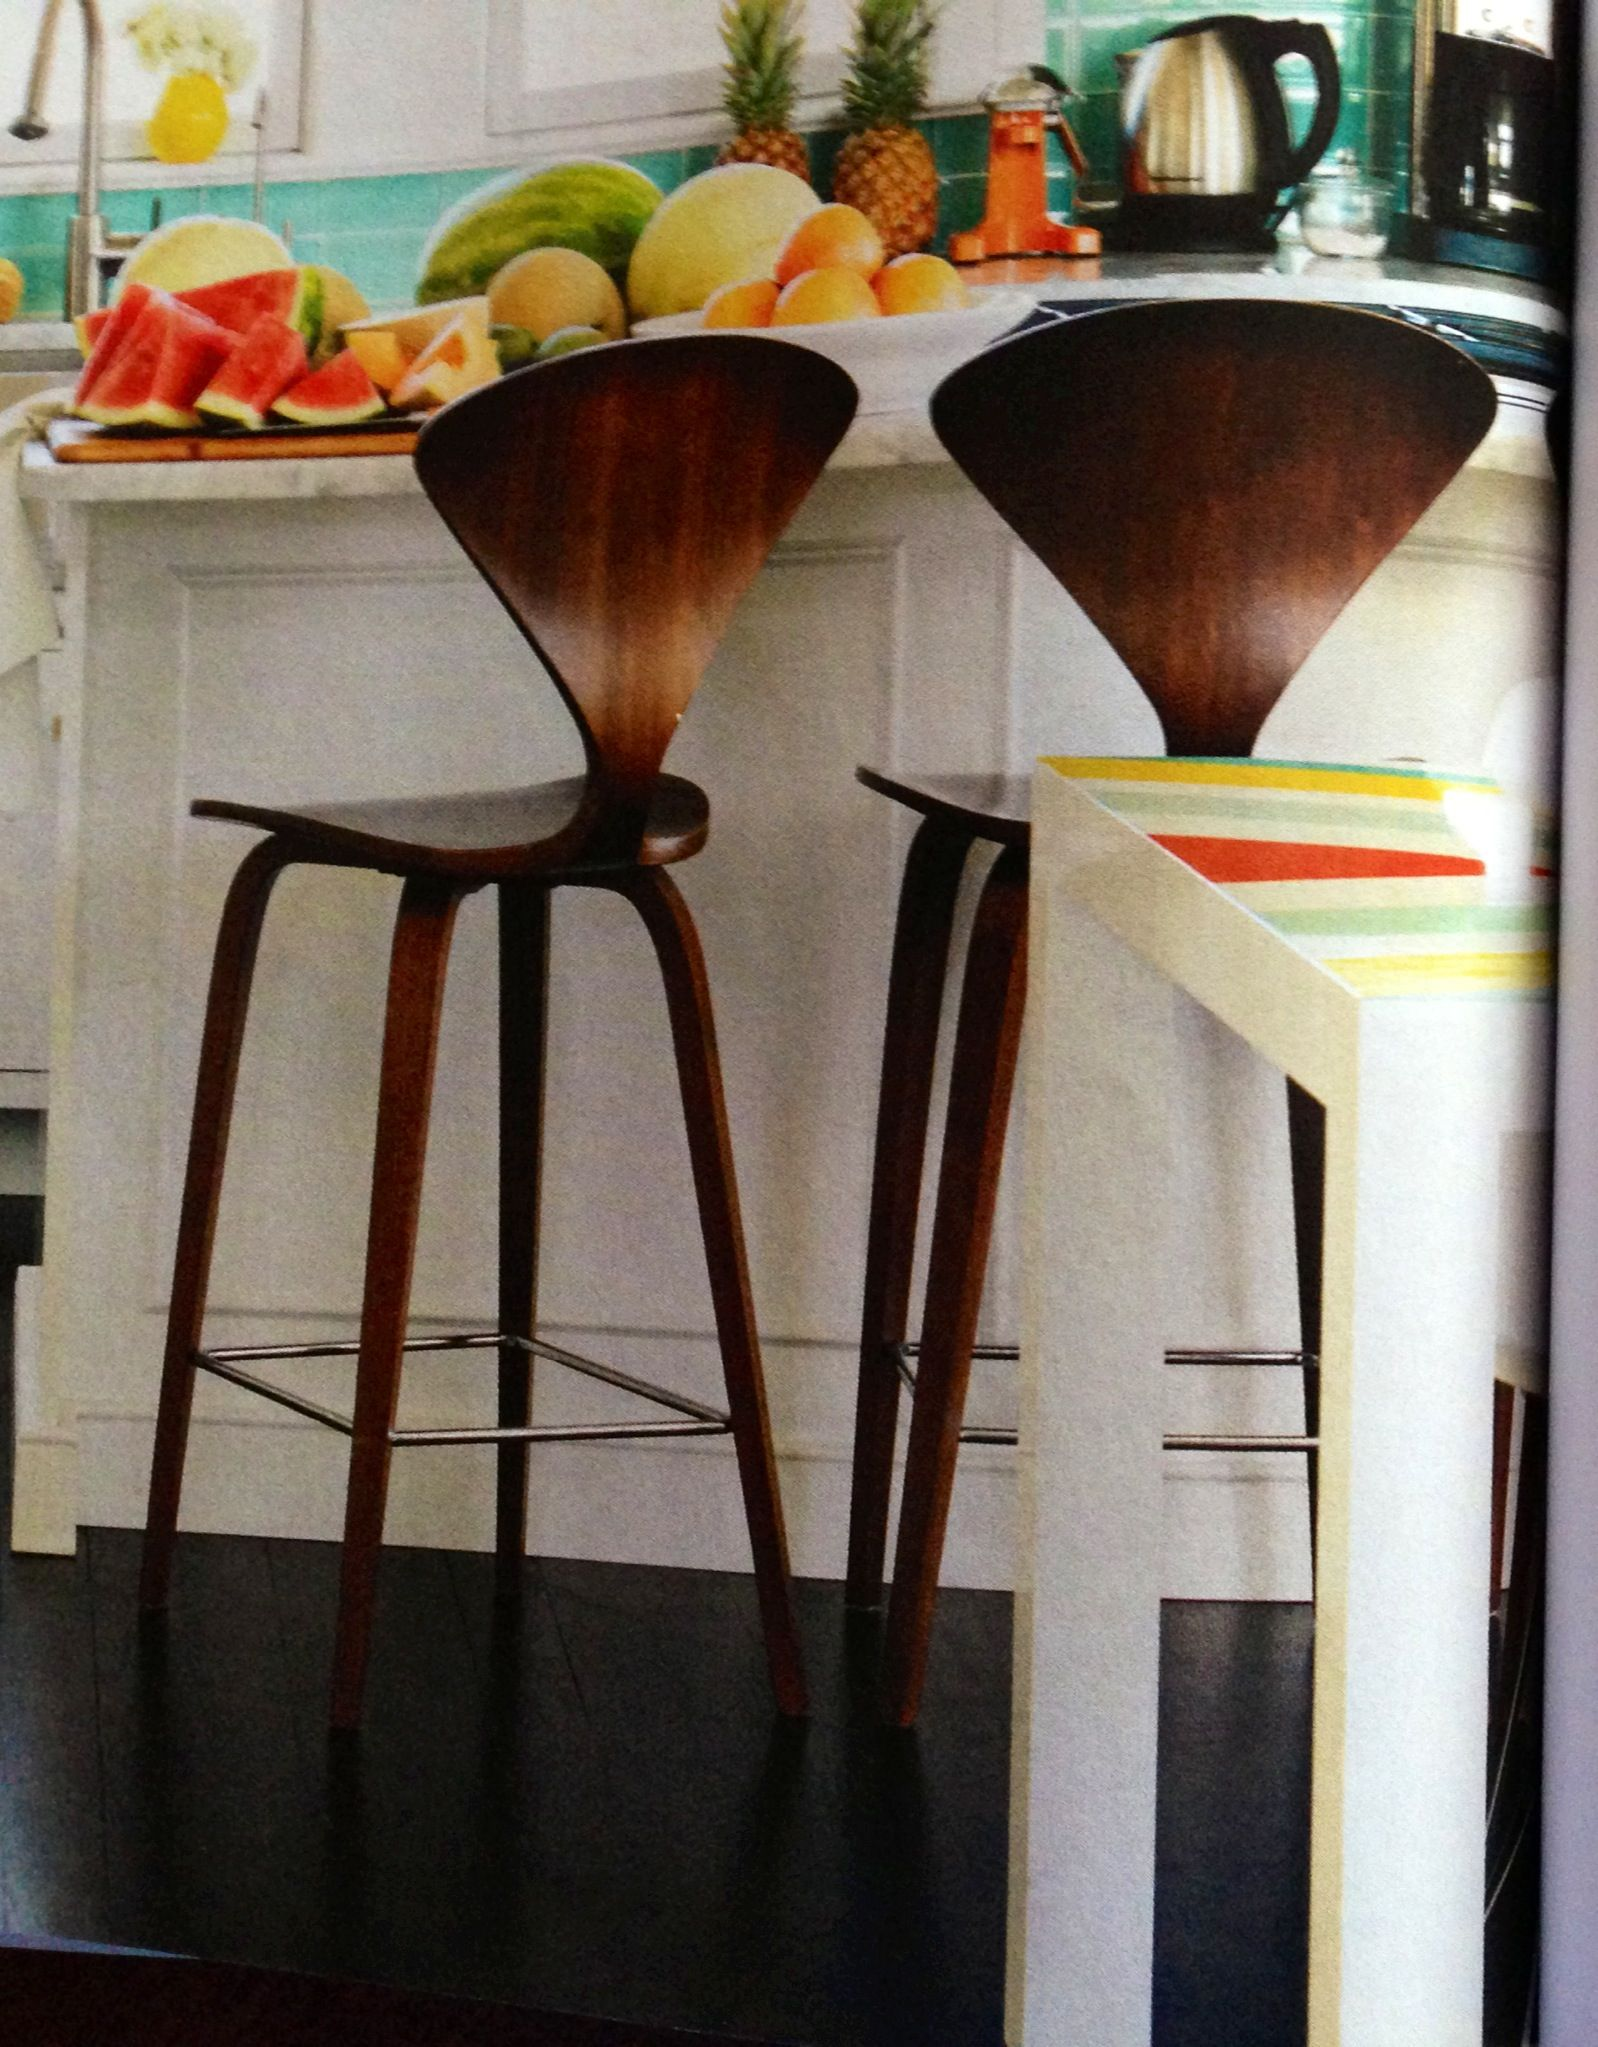 Breakfast/bar stools